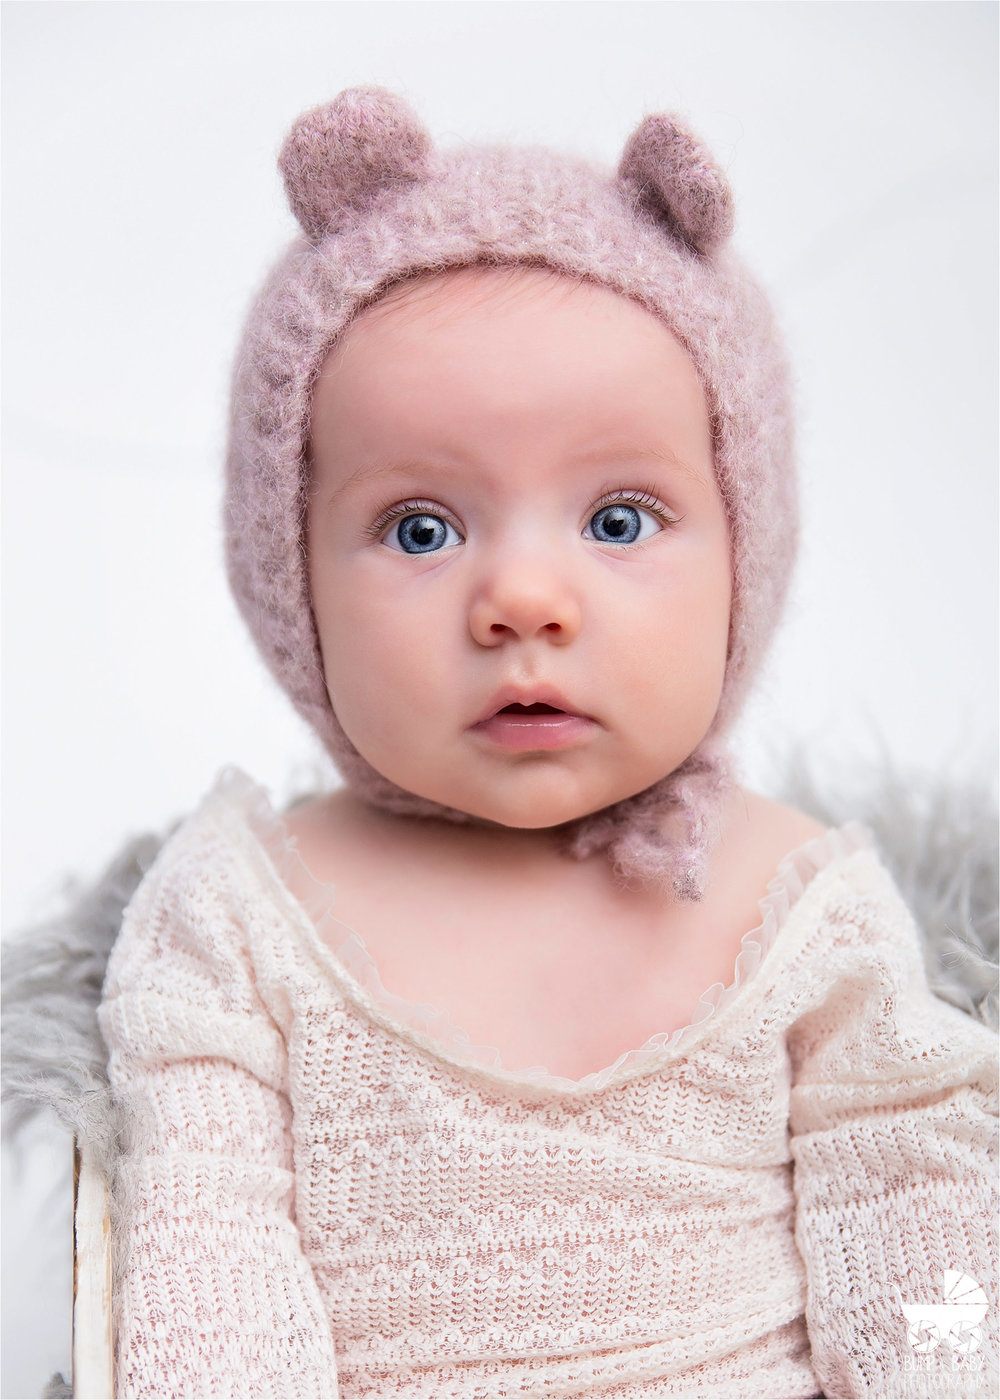 3-Month-Old-Baby-Girl-with-Teddy-Hat-in-Crate.jpg